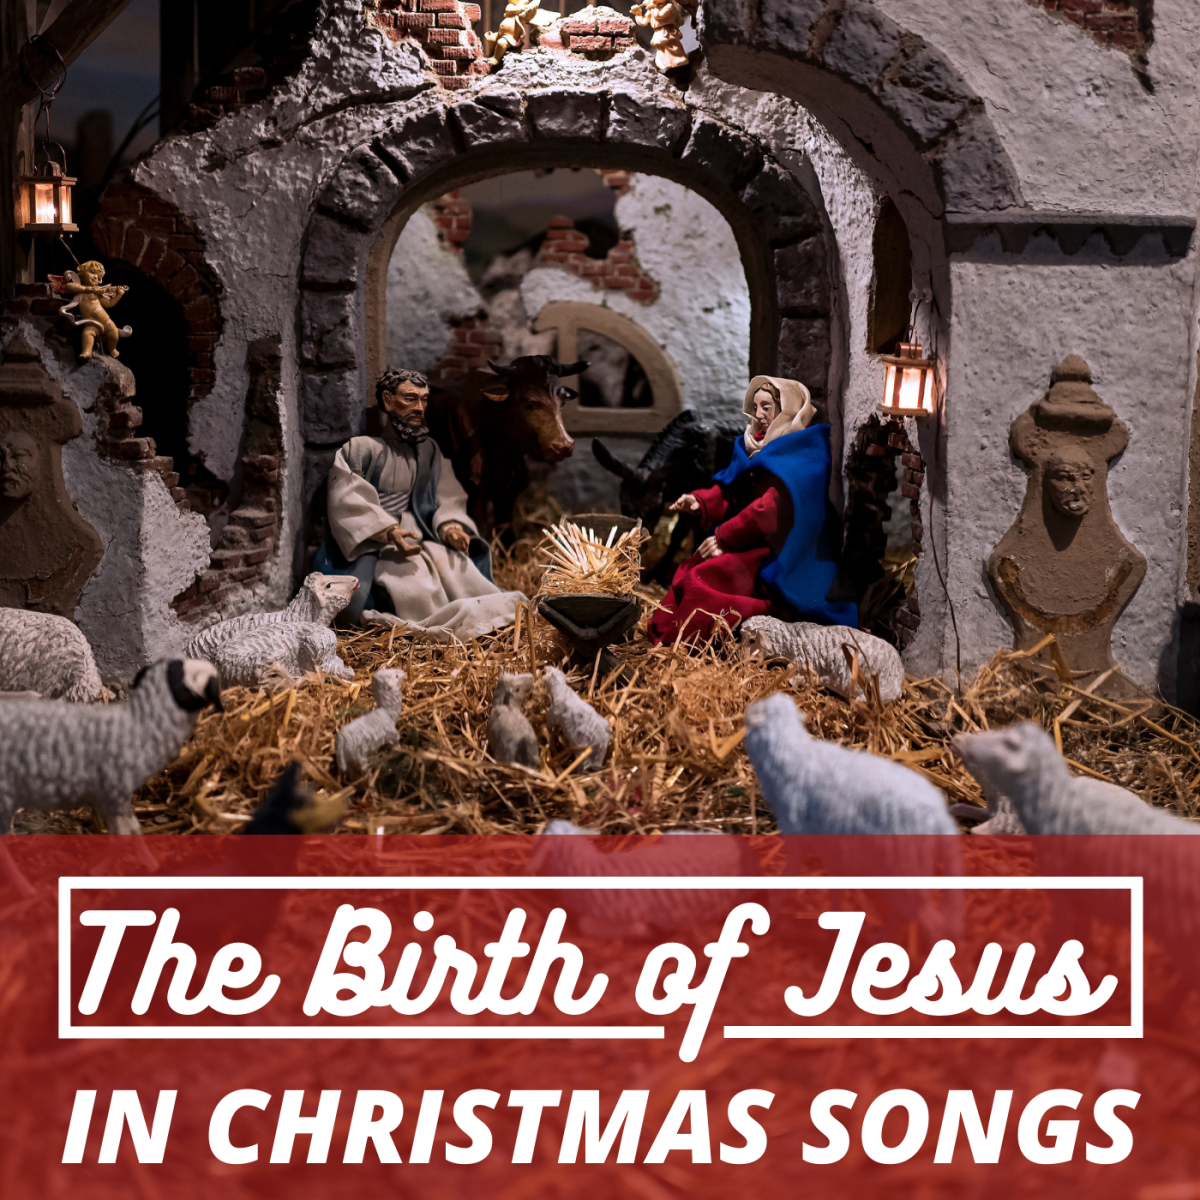 These 10 timeless Yuletide tunes celebrate the birth of Jesus.